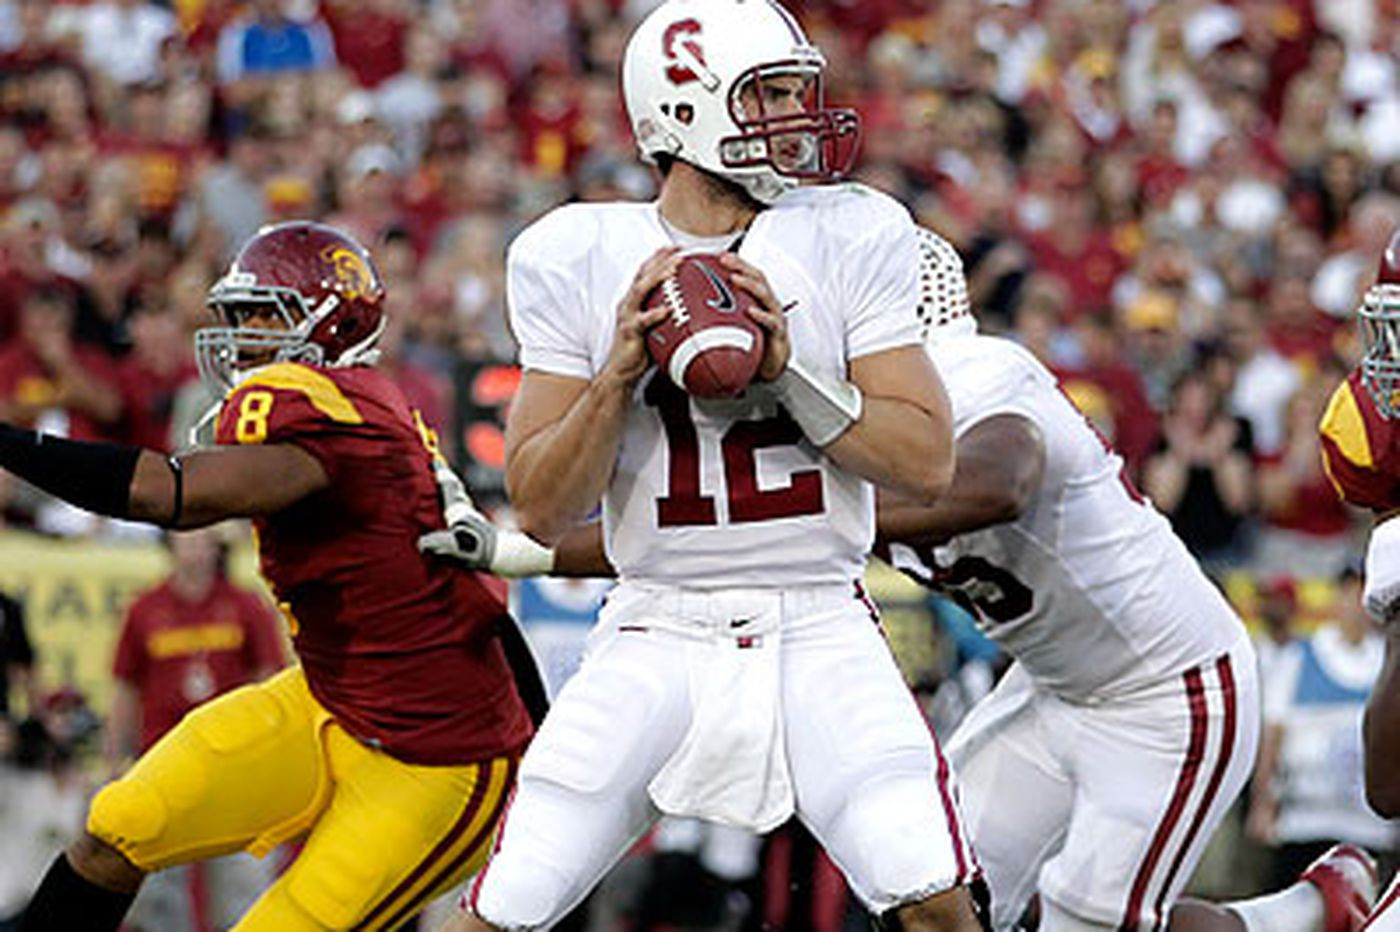 STANFORD MOVES TO FOURTH IN BCS